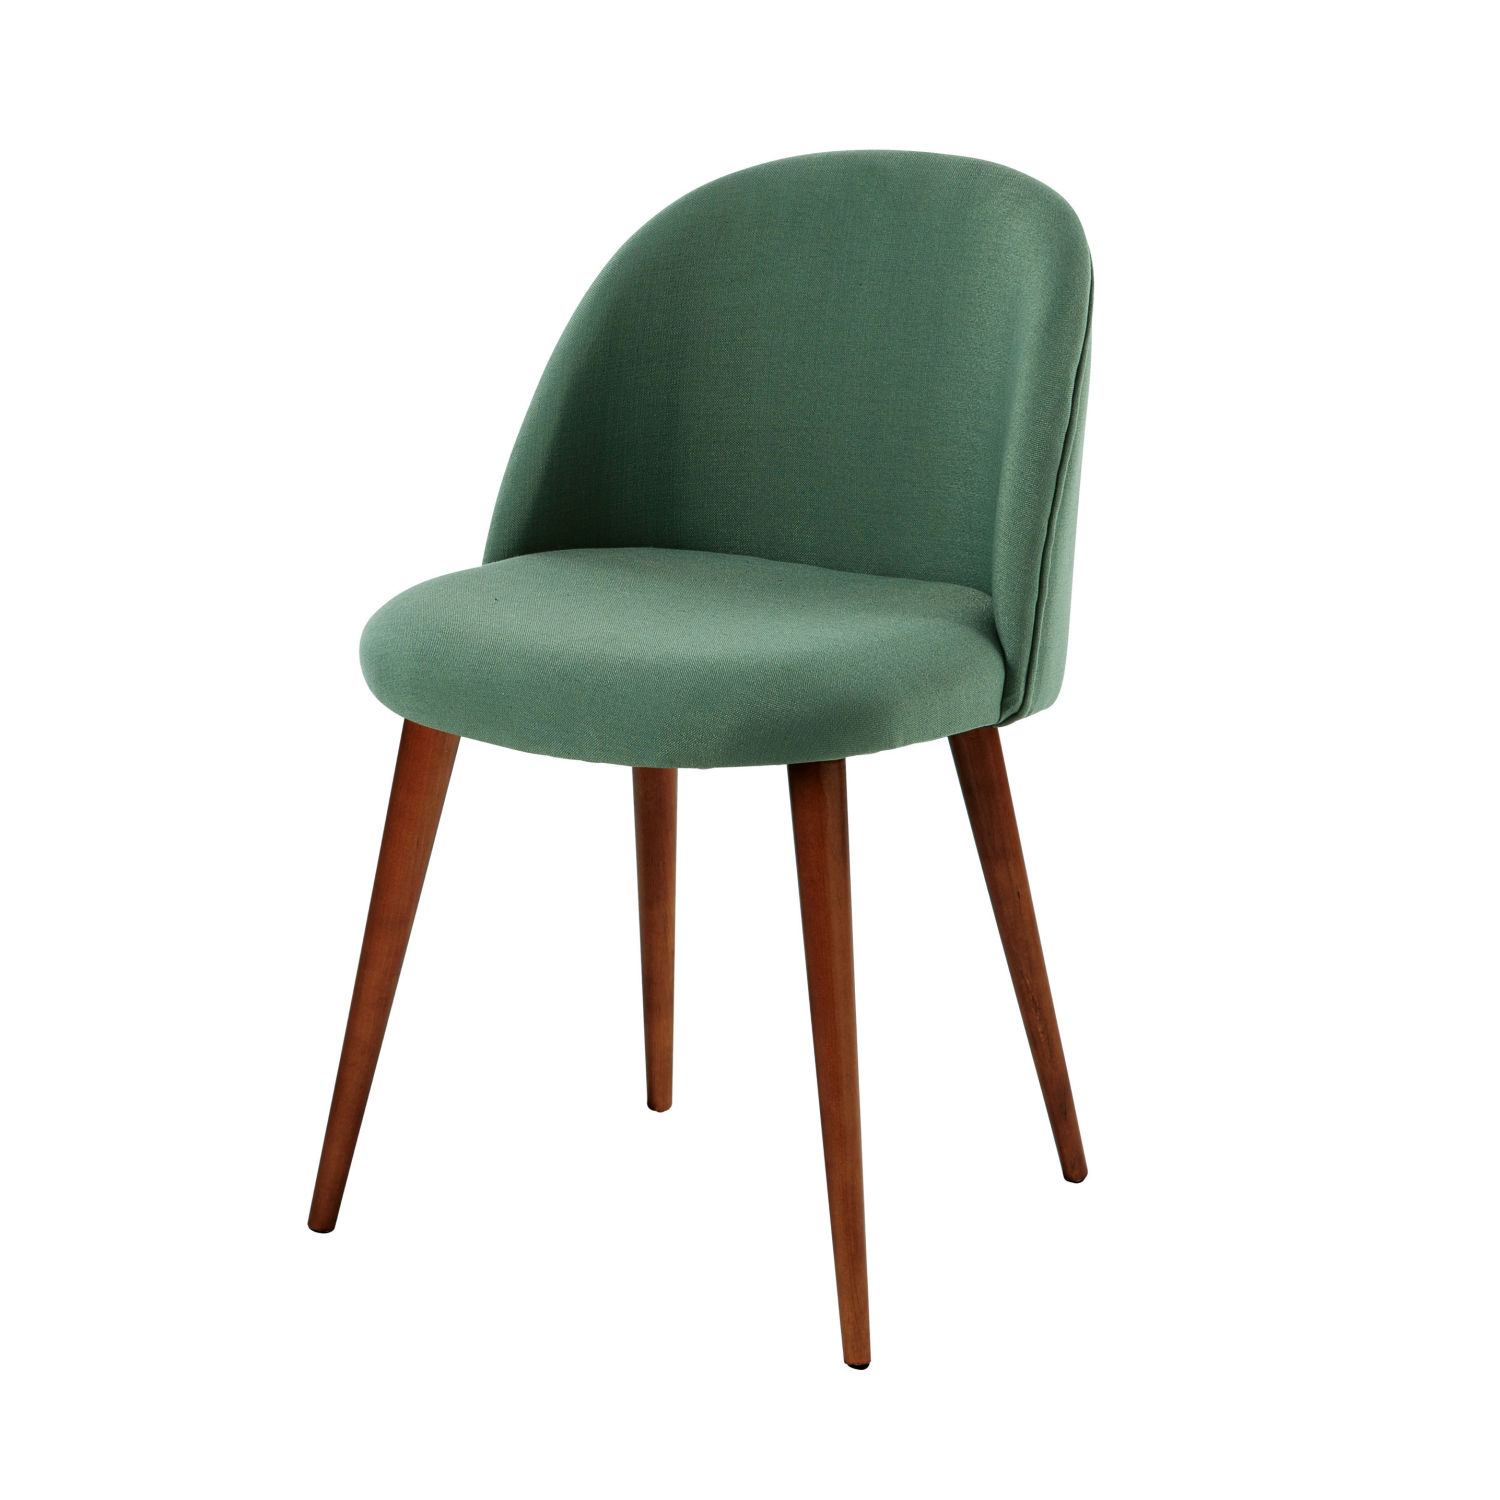 green-vintage-chair-with-solid-birch-1500-1-2-174744_1.jpg